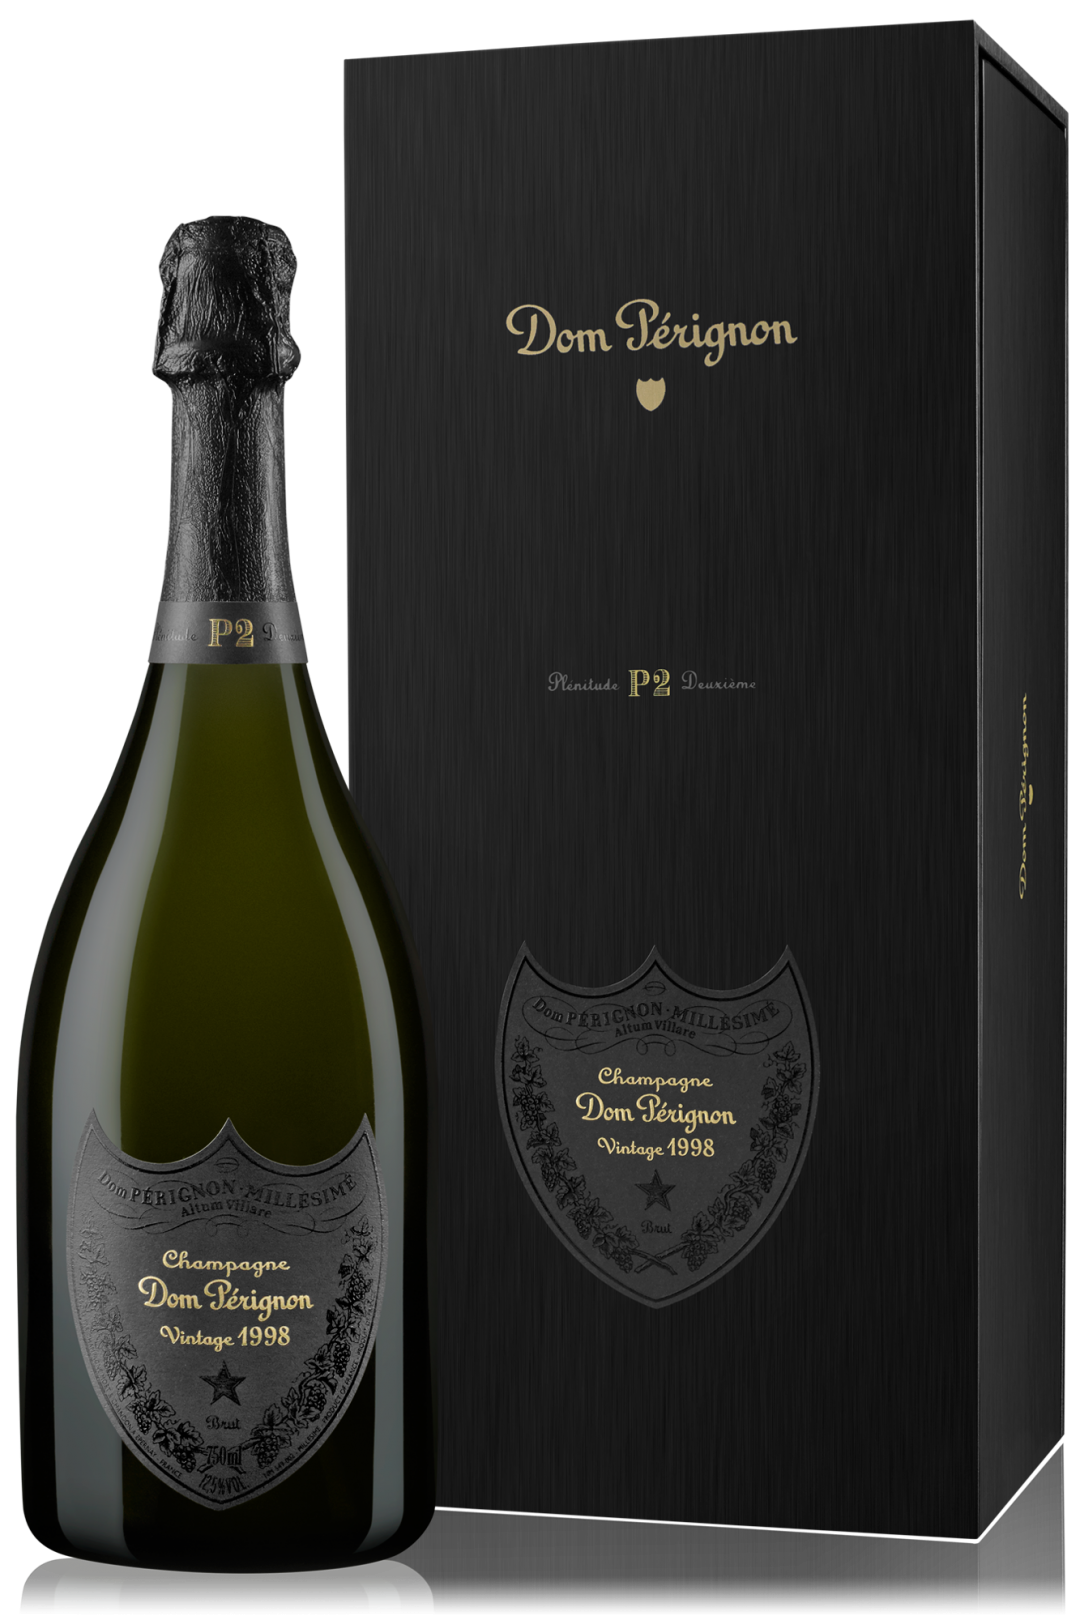 dom-perignon_p2__vintage-1998_bottle-and-box_b